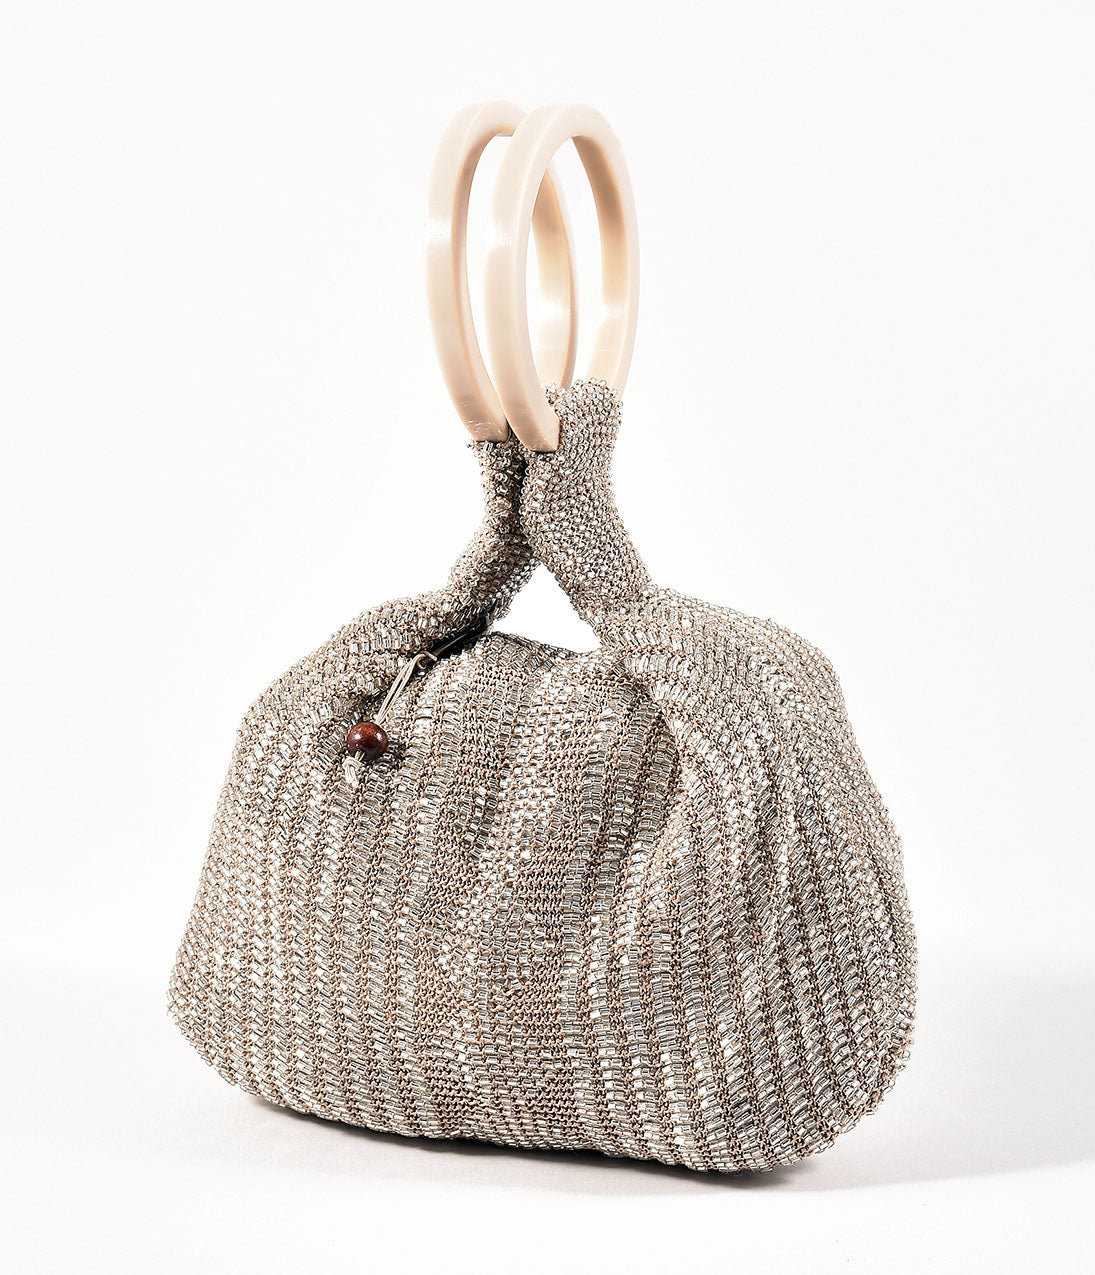 Pretty 1920s Purses and Handbags Retro Style Taupe Silver Beaded Satchel Bag $62.00 AT vintagedancer.com